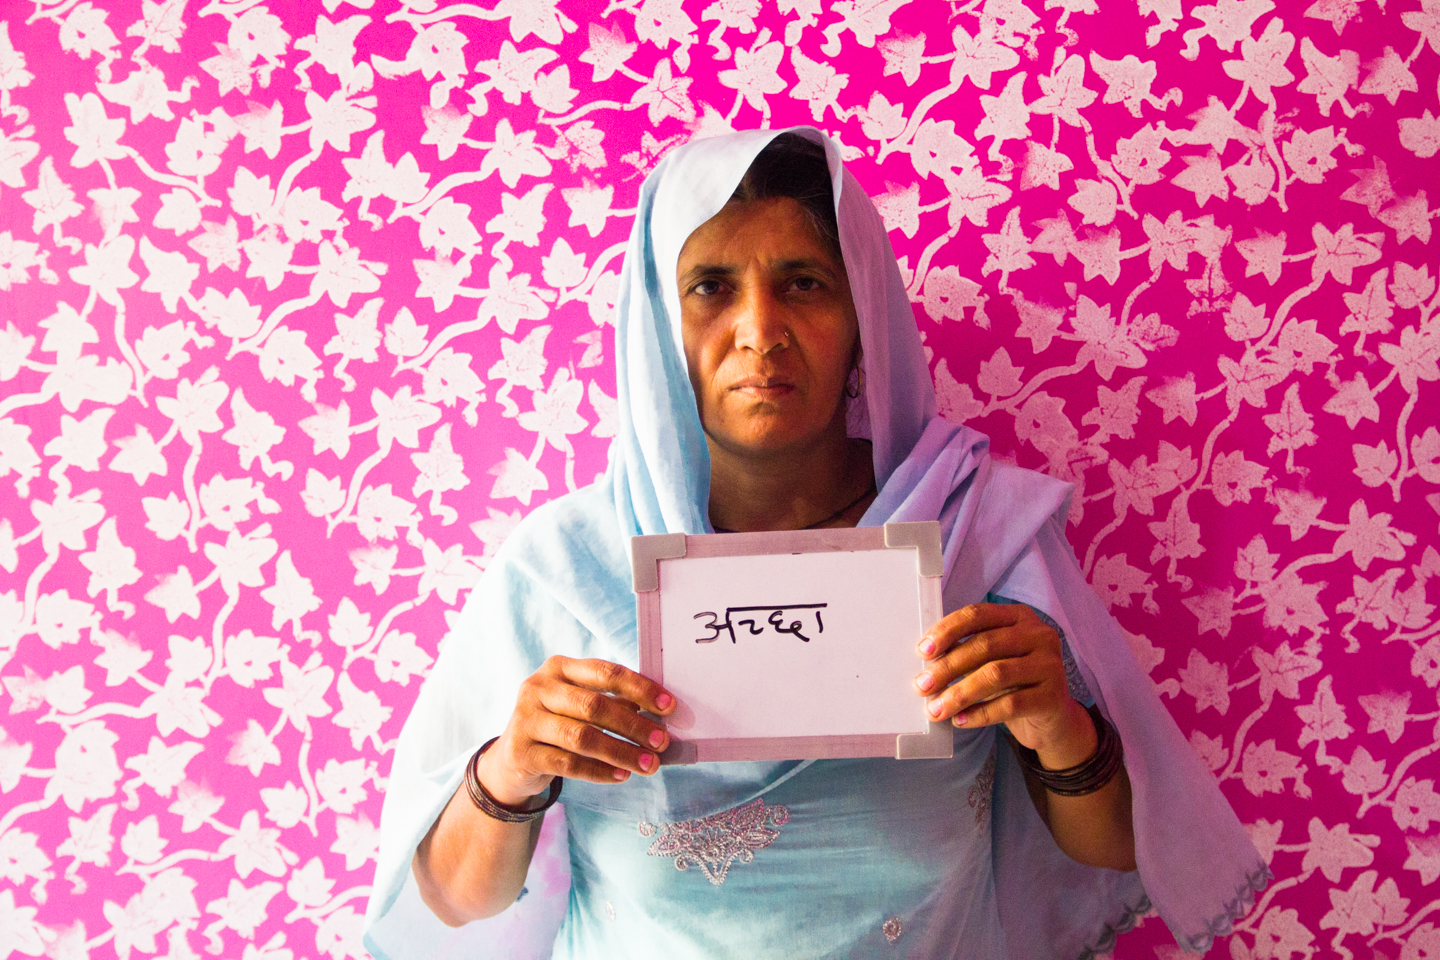 Nirmula, a villager in Hathlana, Haryana, thinks chai is good.